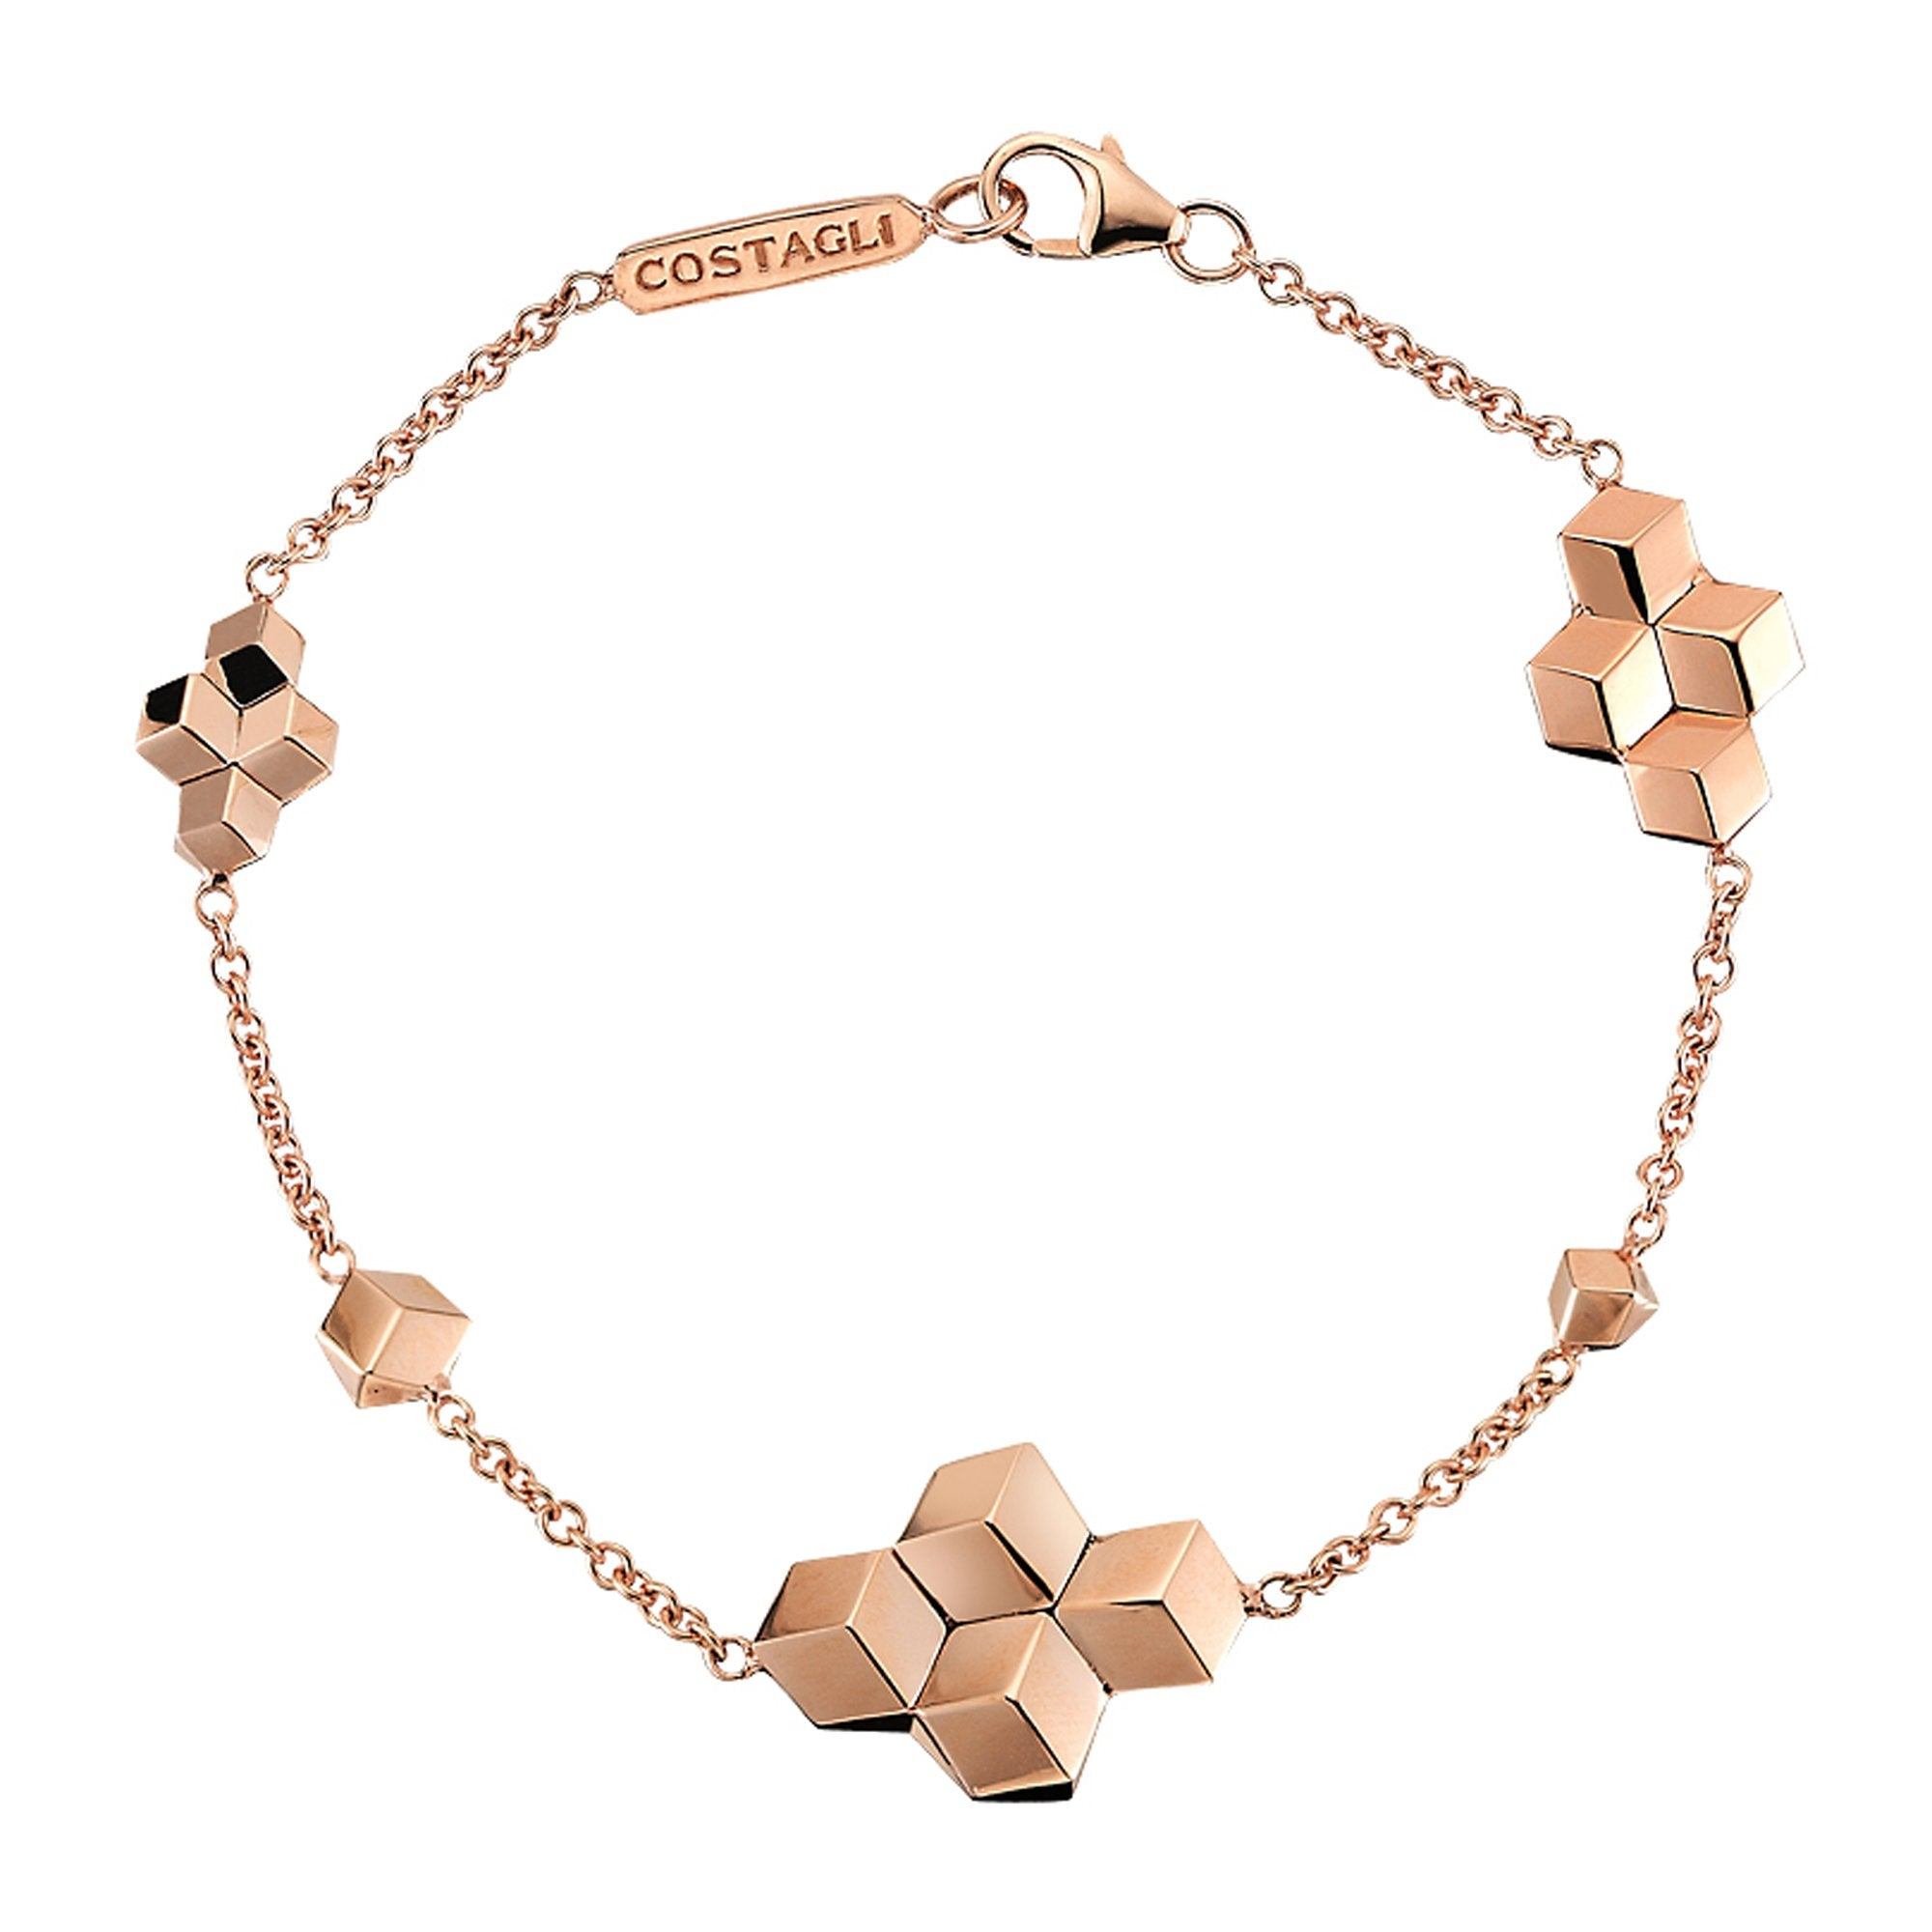 18kt Rose Gold Brillante® Station Bracelet - Paolo Costagli